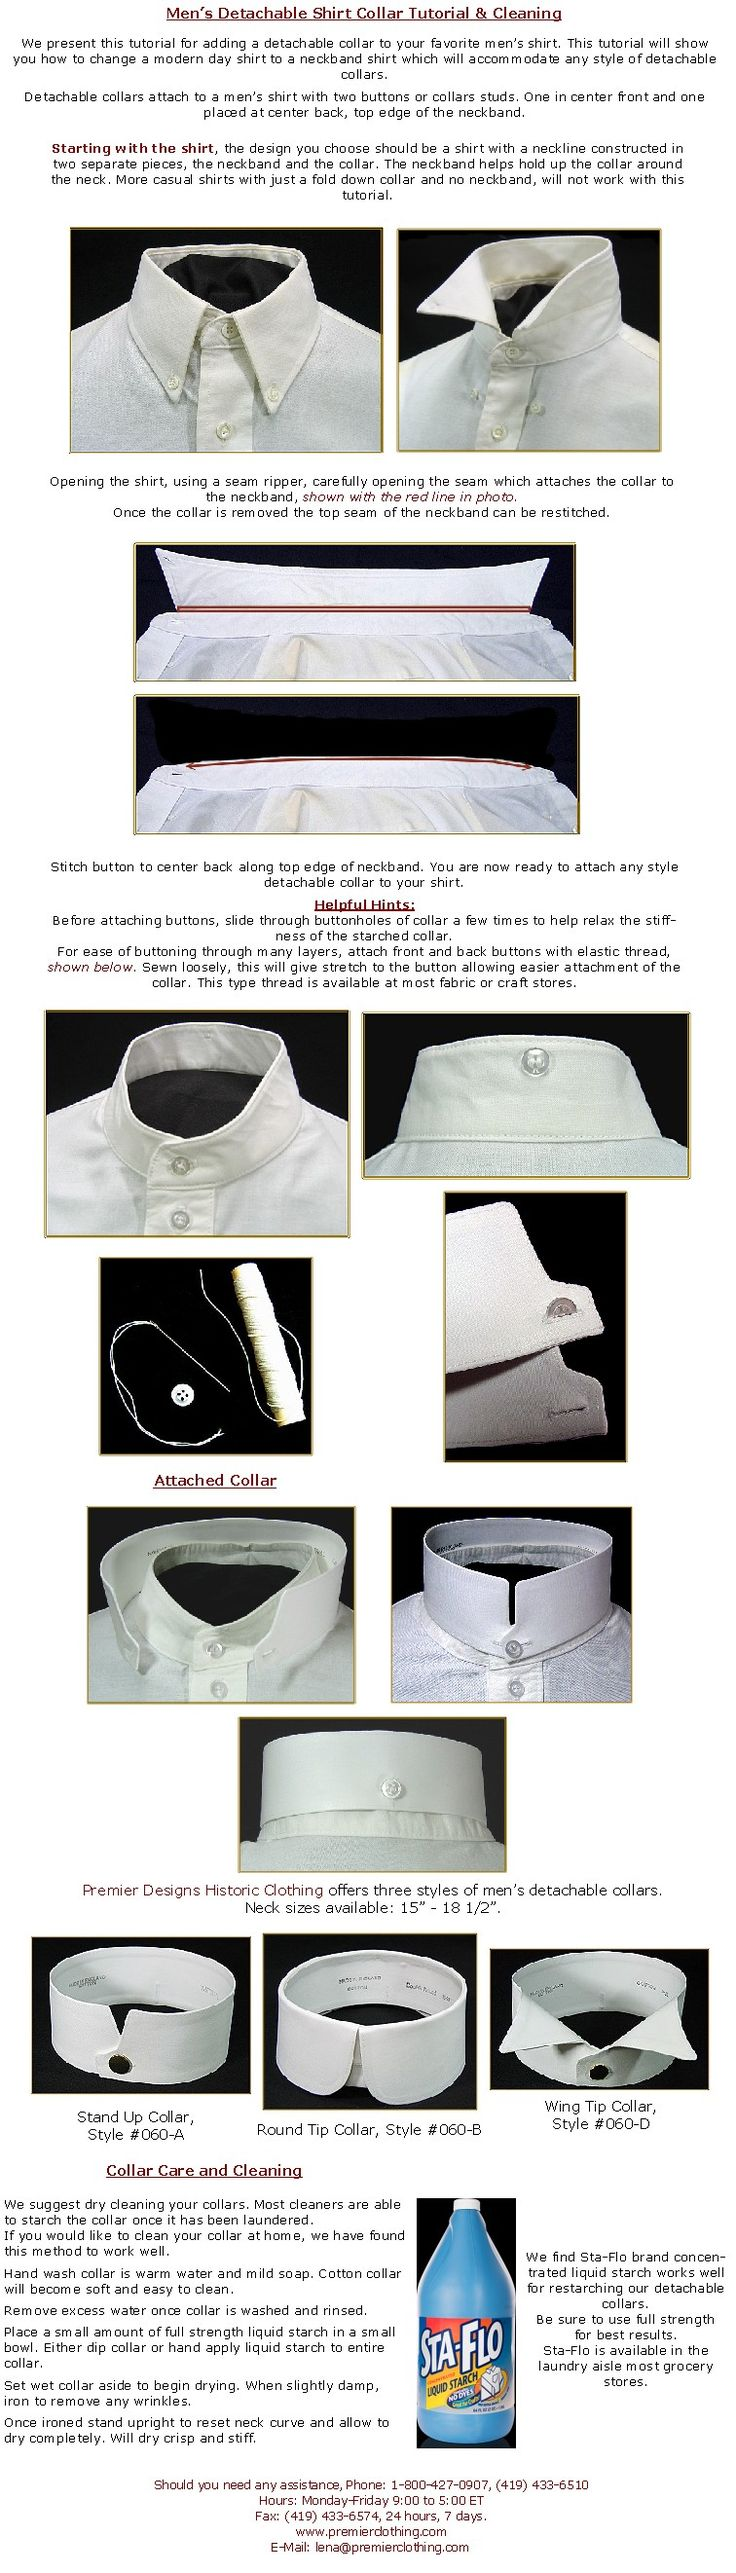 35-Men's Detachable Collar Instructions & Cleaning